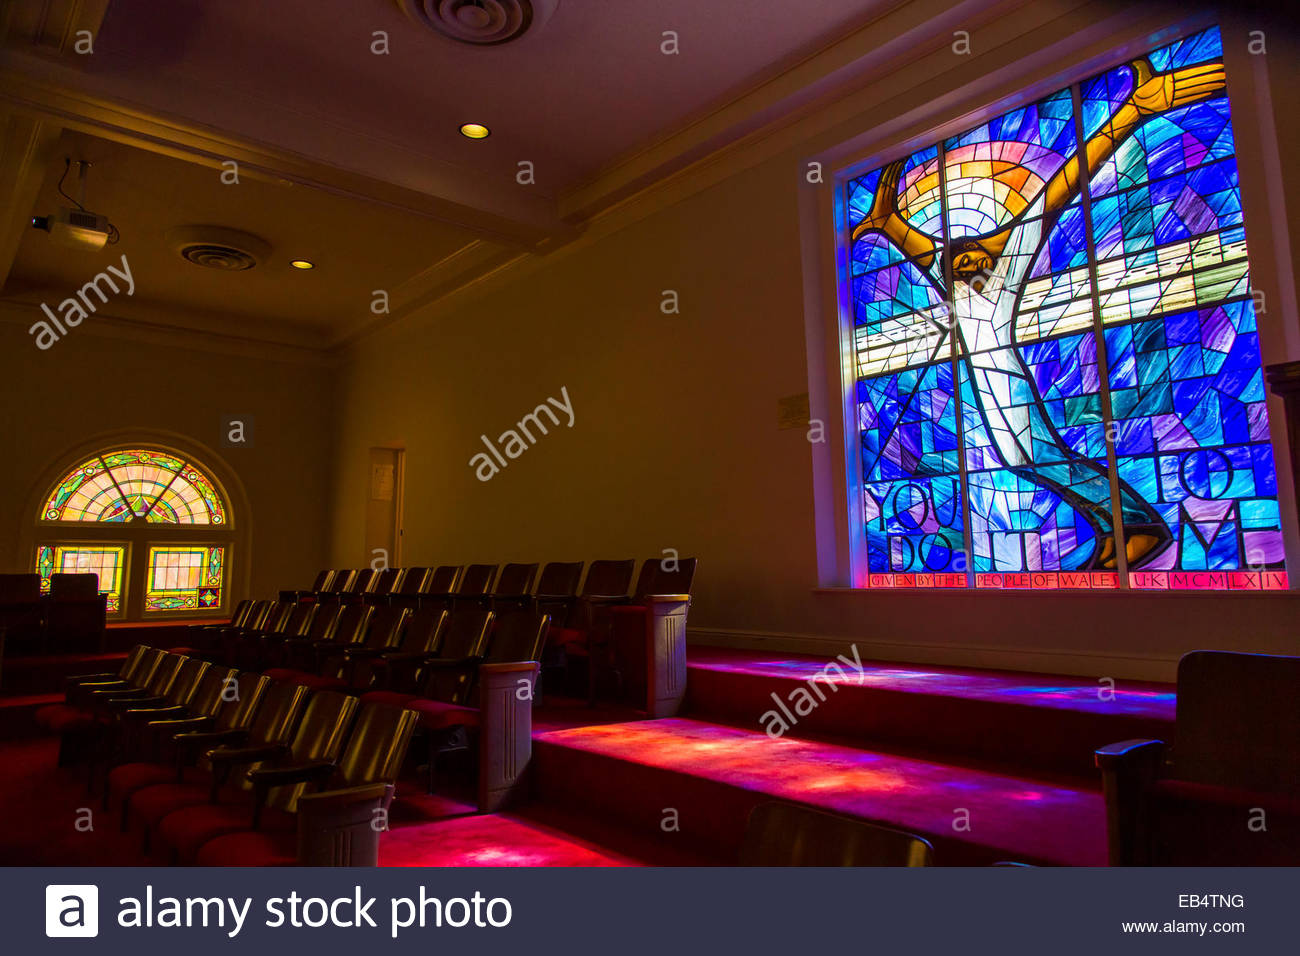 Memorial window at the 16th Street Baptist Church, from the people of Wales after the 1963 bombing. Stock Photo